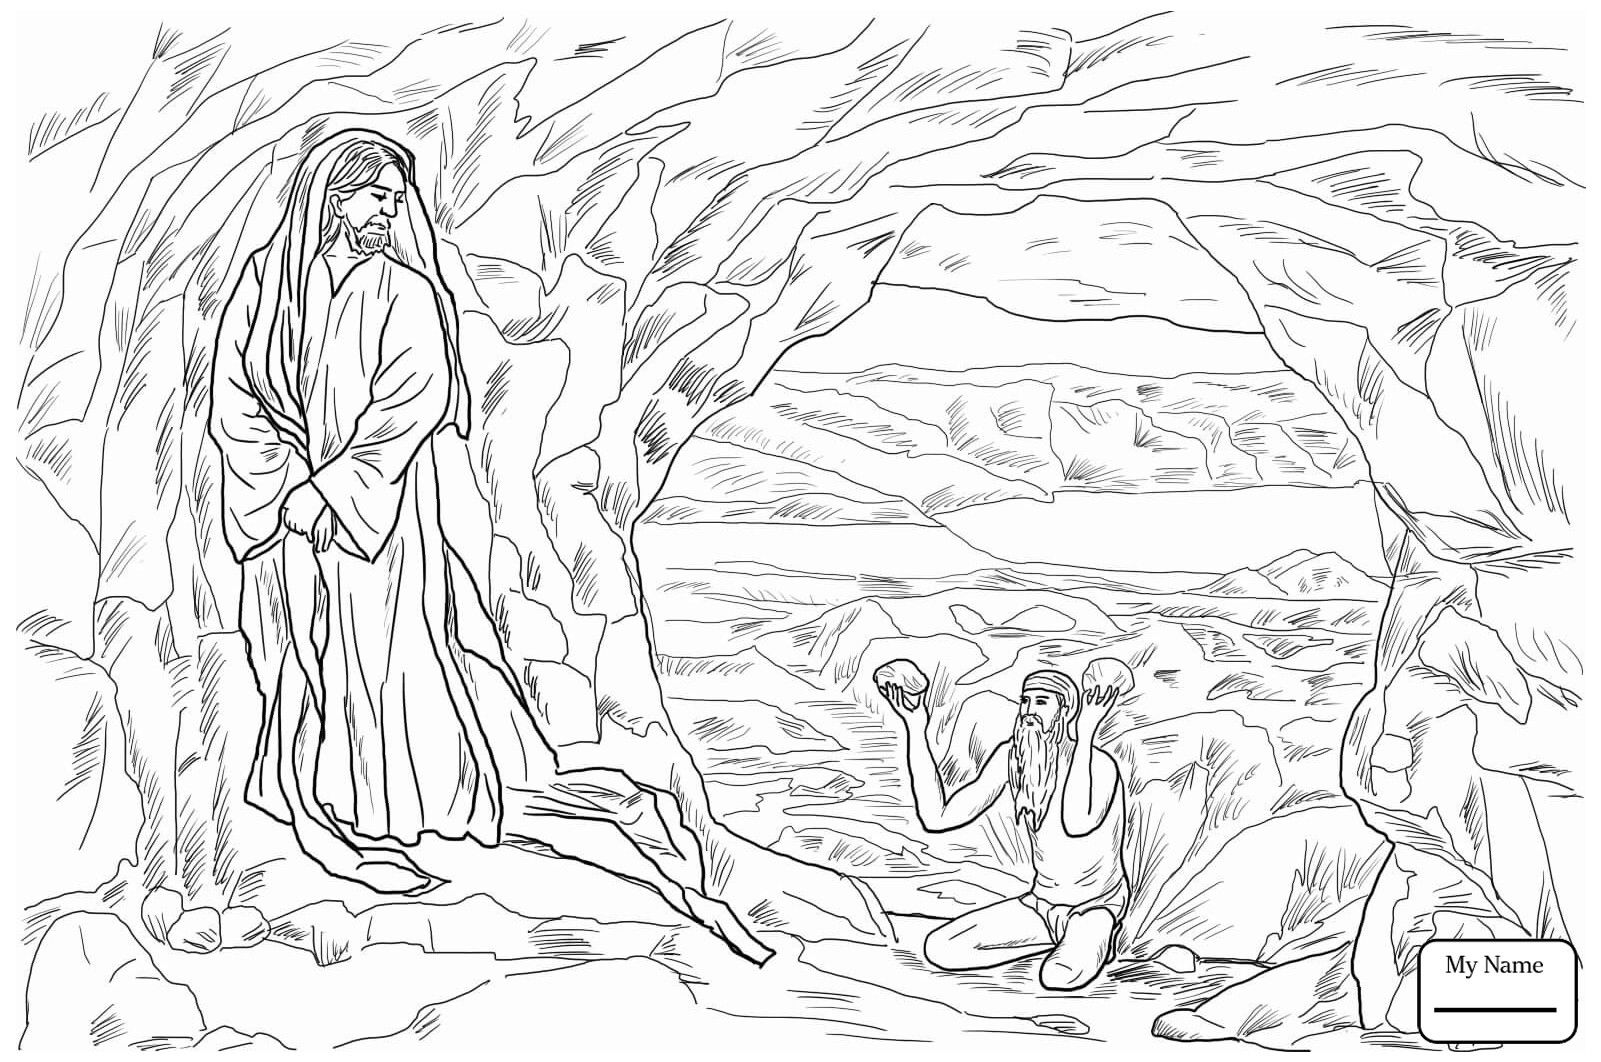 Temptation Of Jesus Coloring Pages Temptation Of Christ Bible Coloring Pages Coloring Pages Jesus Coloring Pages